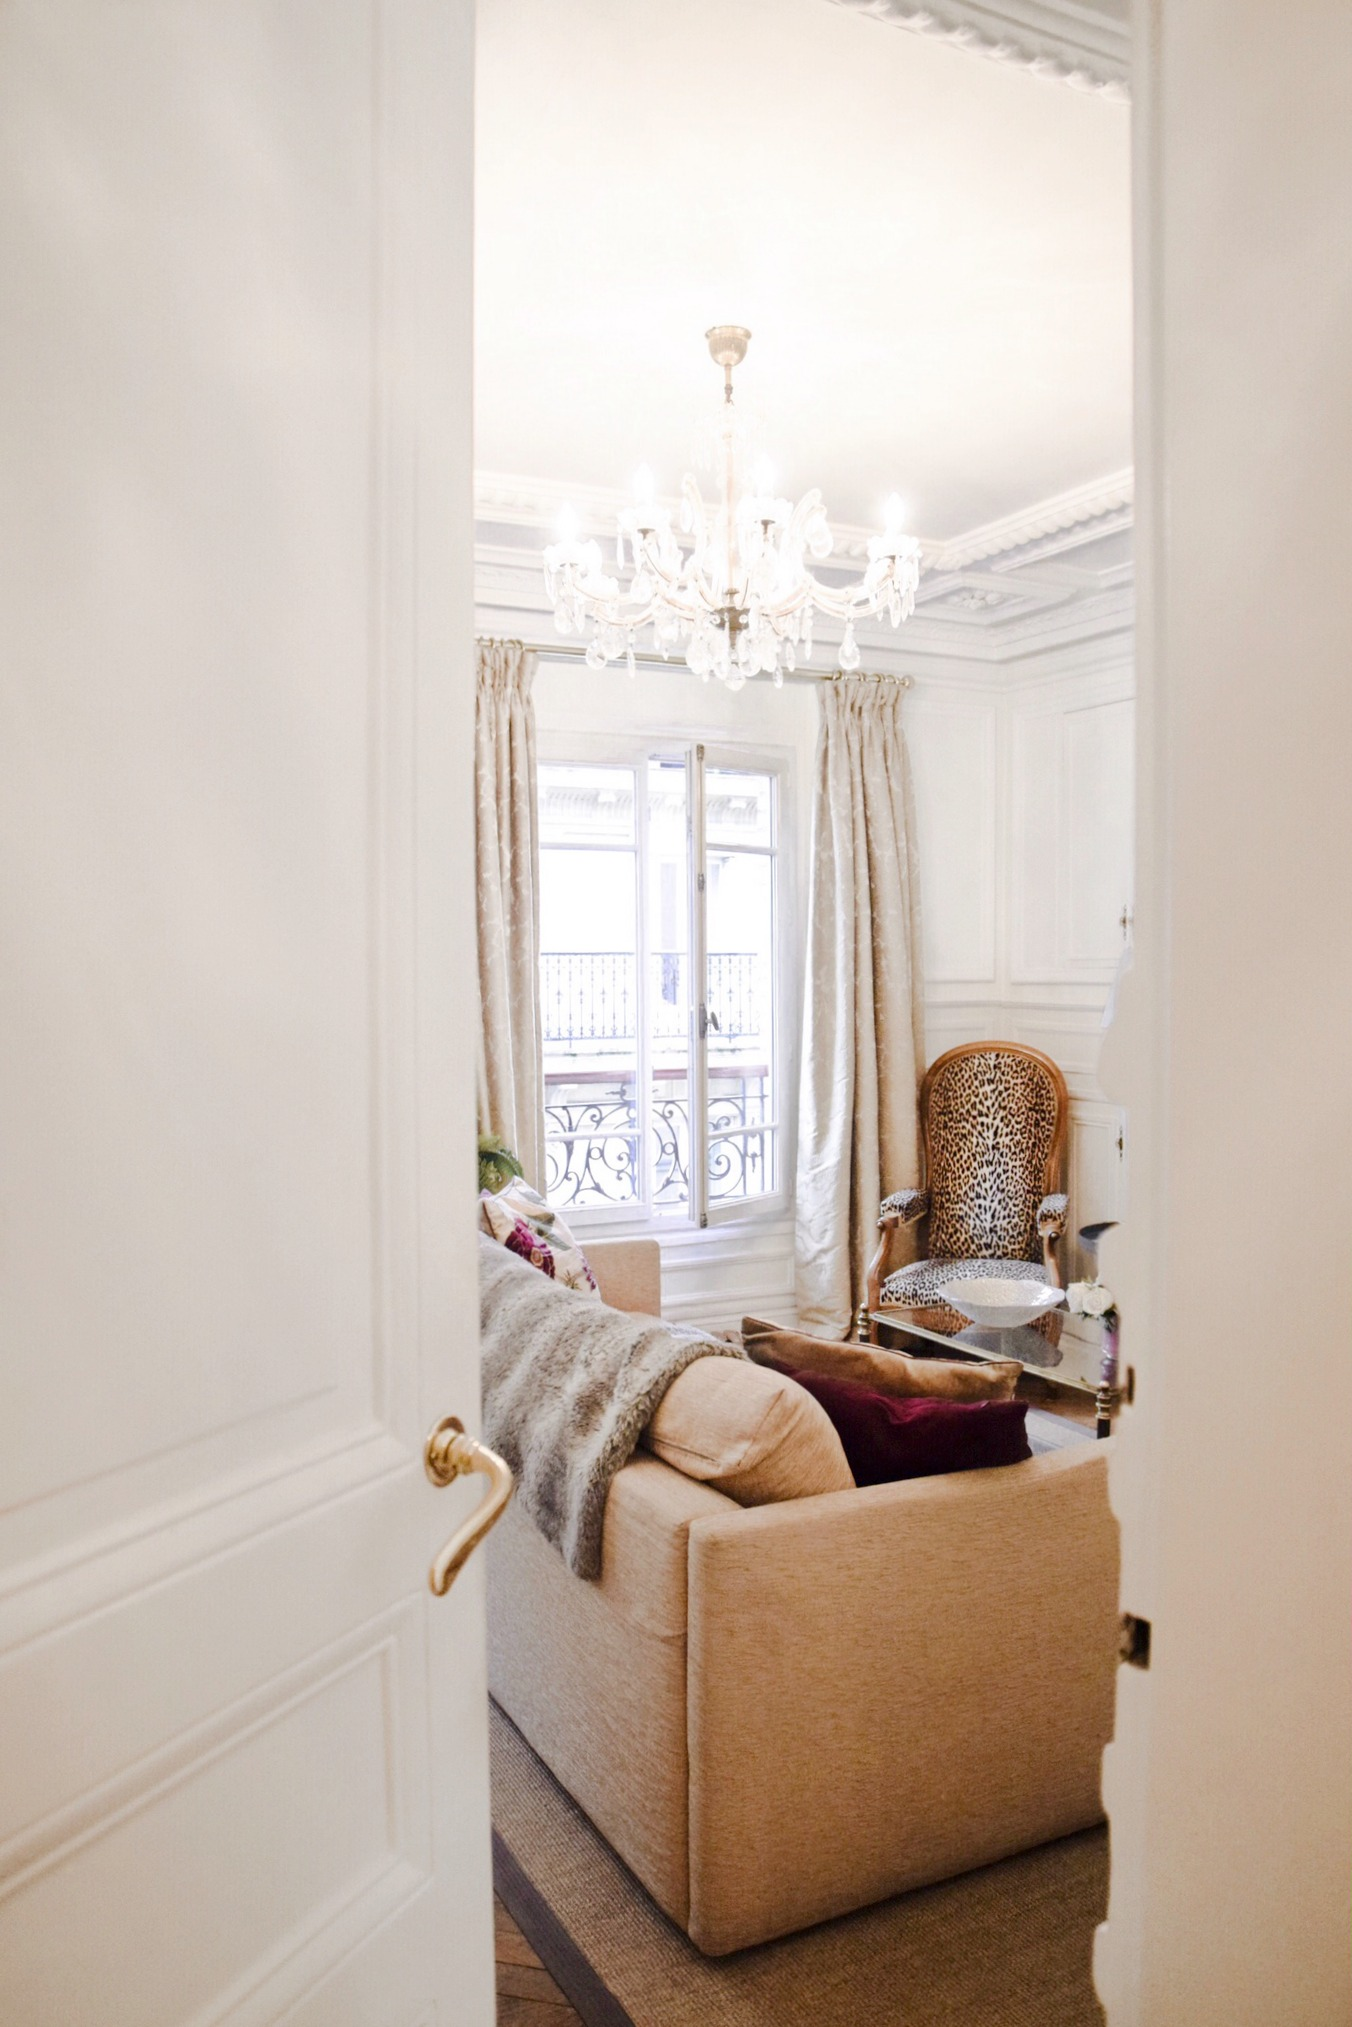 My Paris Apartment & Wardrobe // Cobblestone Paris Apartment Rentals // What I Wore In Paris April-May 2017 // Luxury Handbag Collection // Luxury Shoe Collection // Los Angeles Fashion Blogger Daphne Blunt: To Style, With Love